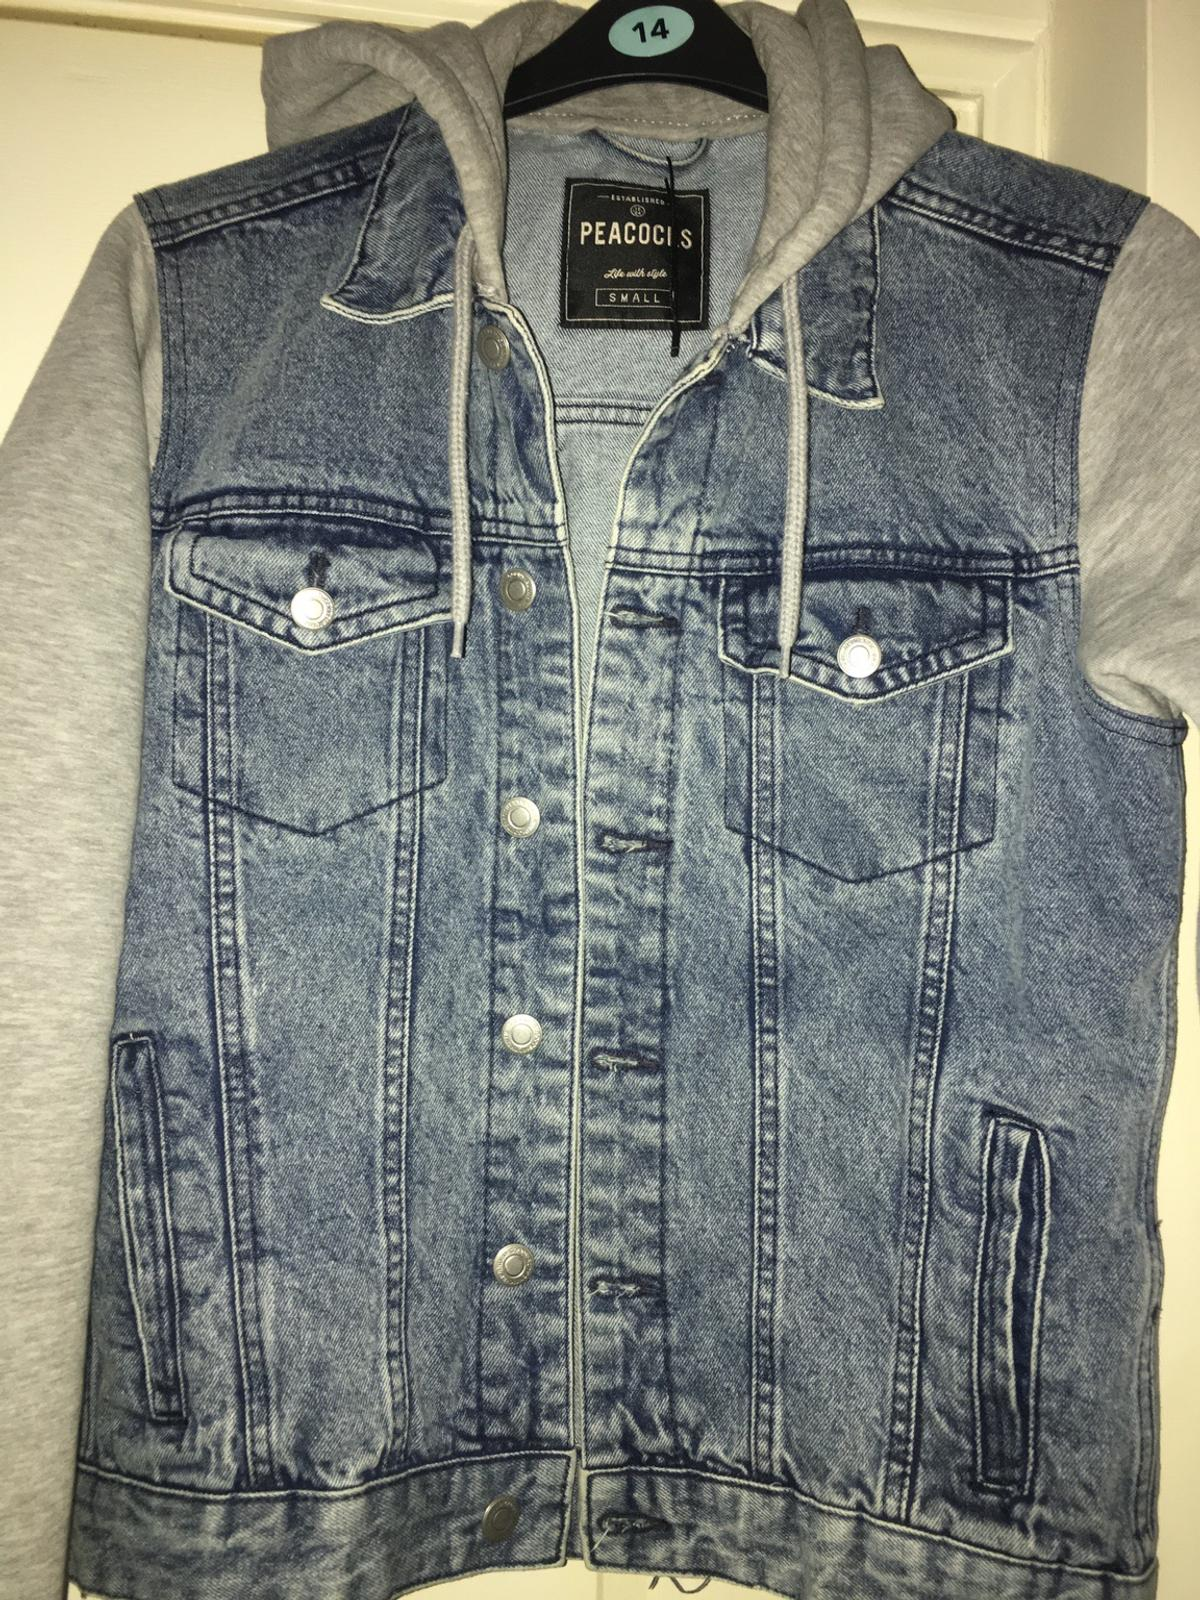 Men's denim jacket by peacocks Size Small Used good condition £3 postage cost